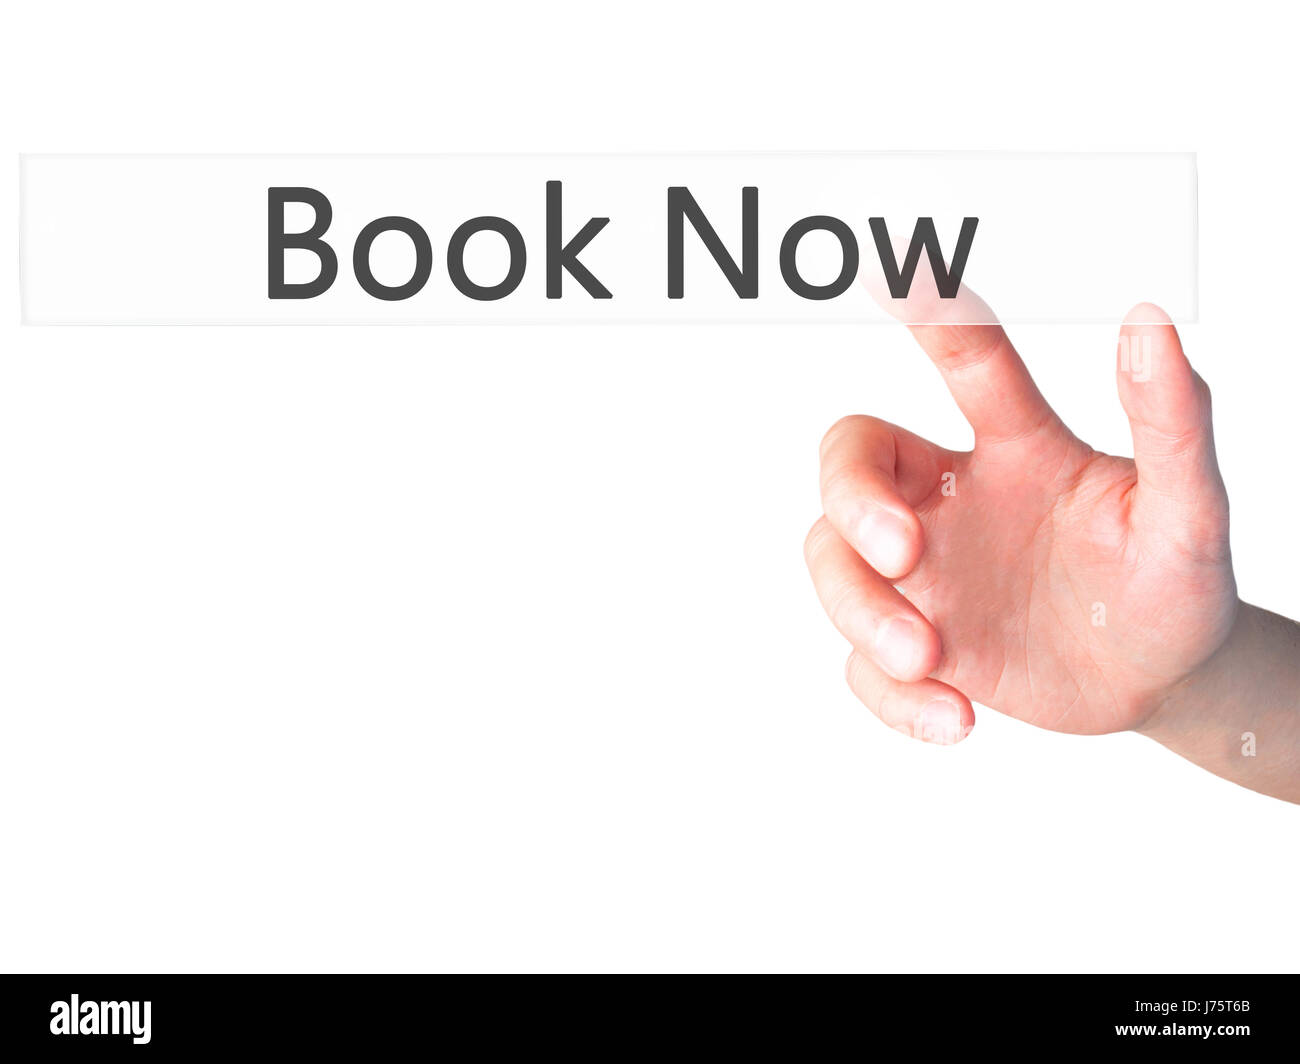 Book Now - Hand pressing a button on blurred background concept . Business, technology, internet concept. Stock - Stock Image